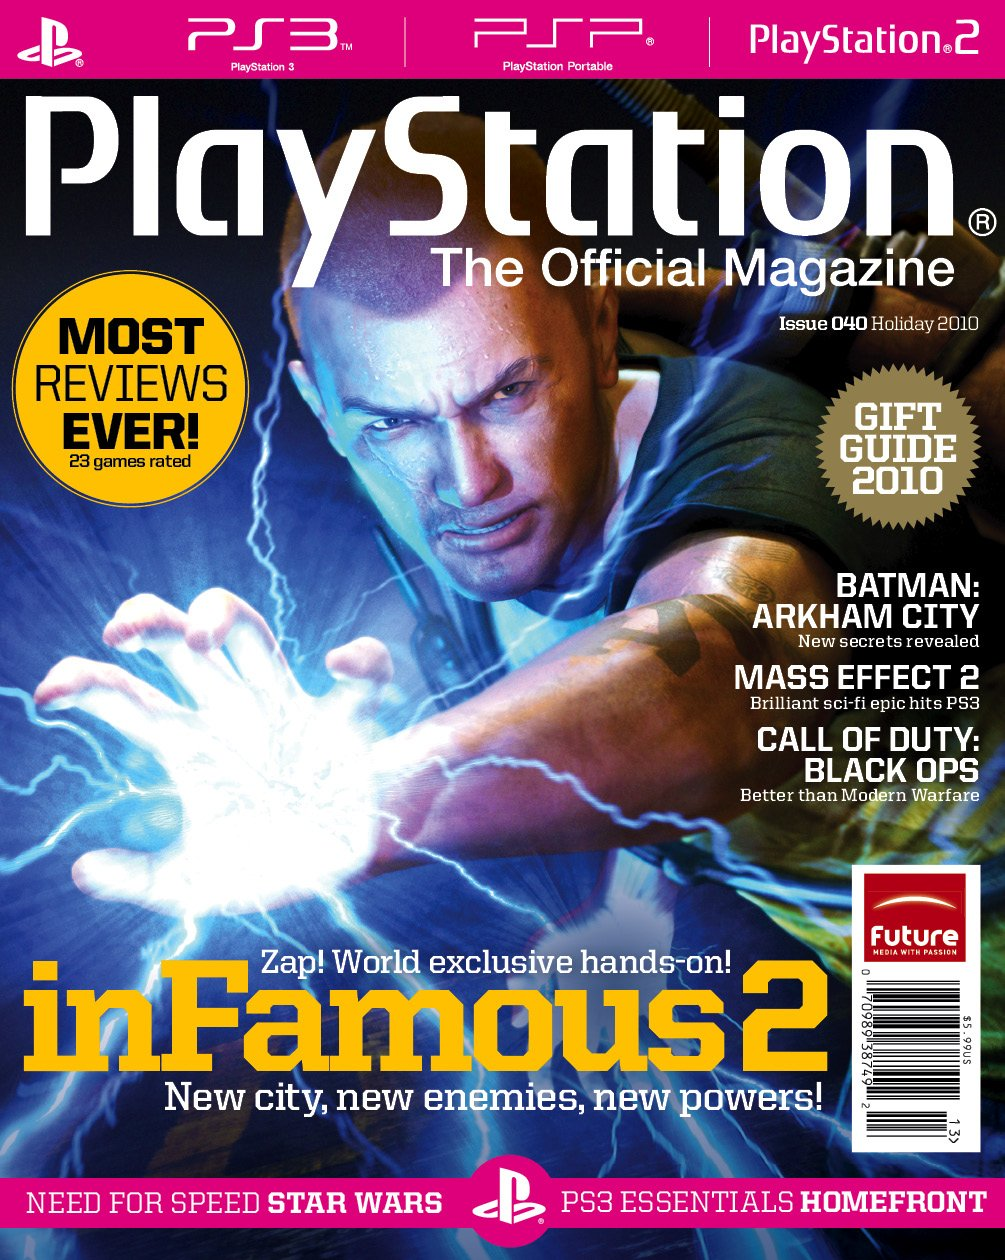 Playstation The Official Magazine (USA) Issue 040 (Xmas 2010)